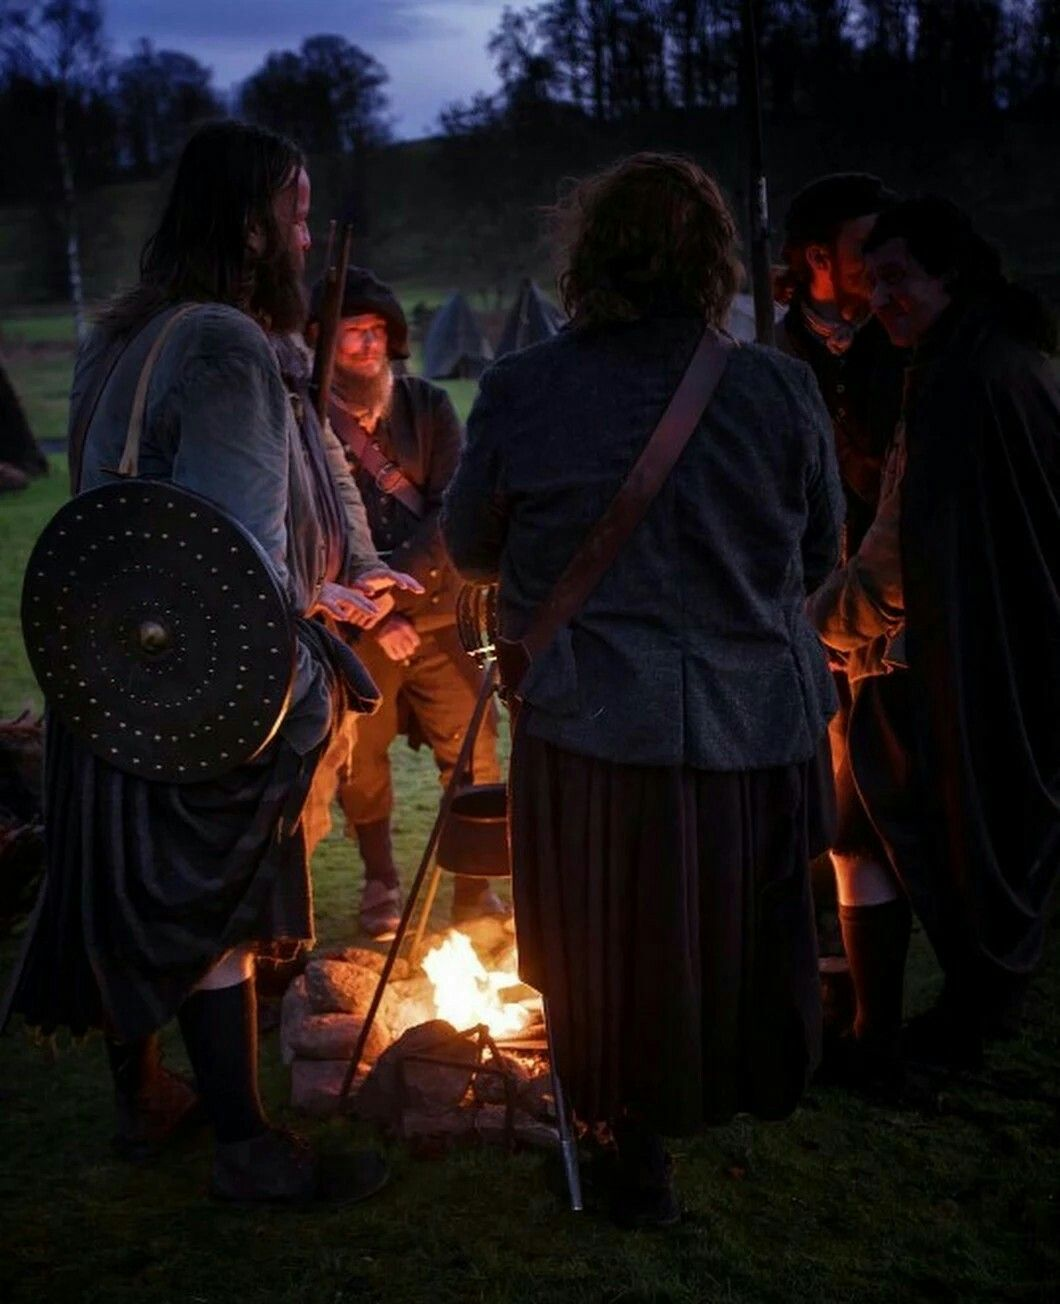 Jacobite army campfire, from the television series Outlander, #comejoinourCampaign, visit jacobitetours.co.uk